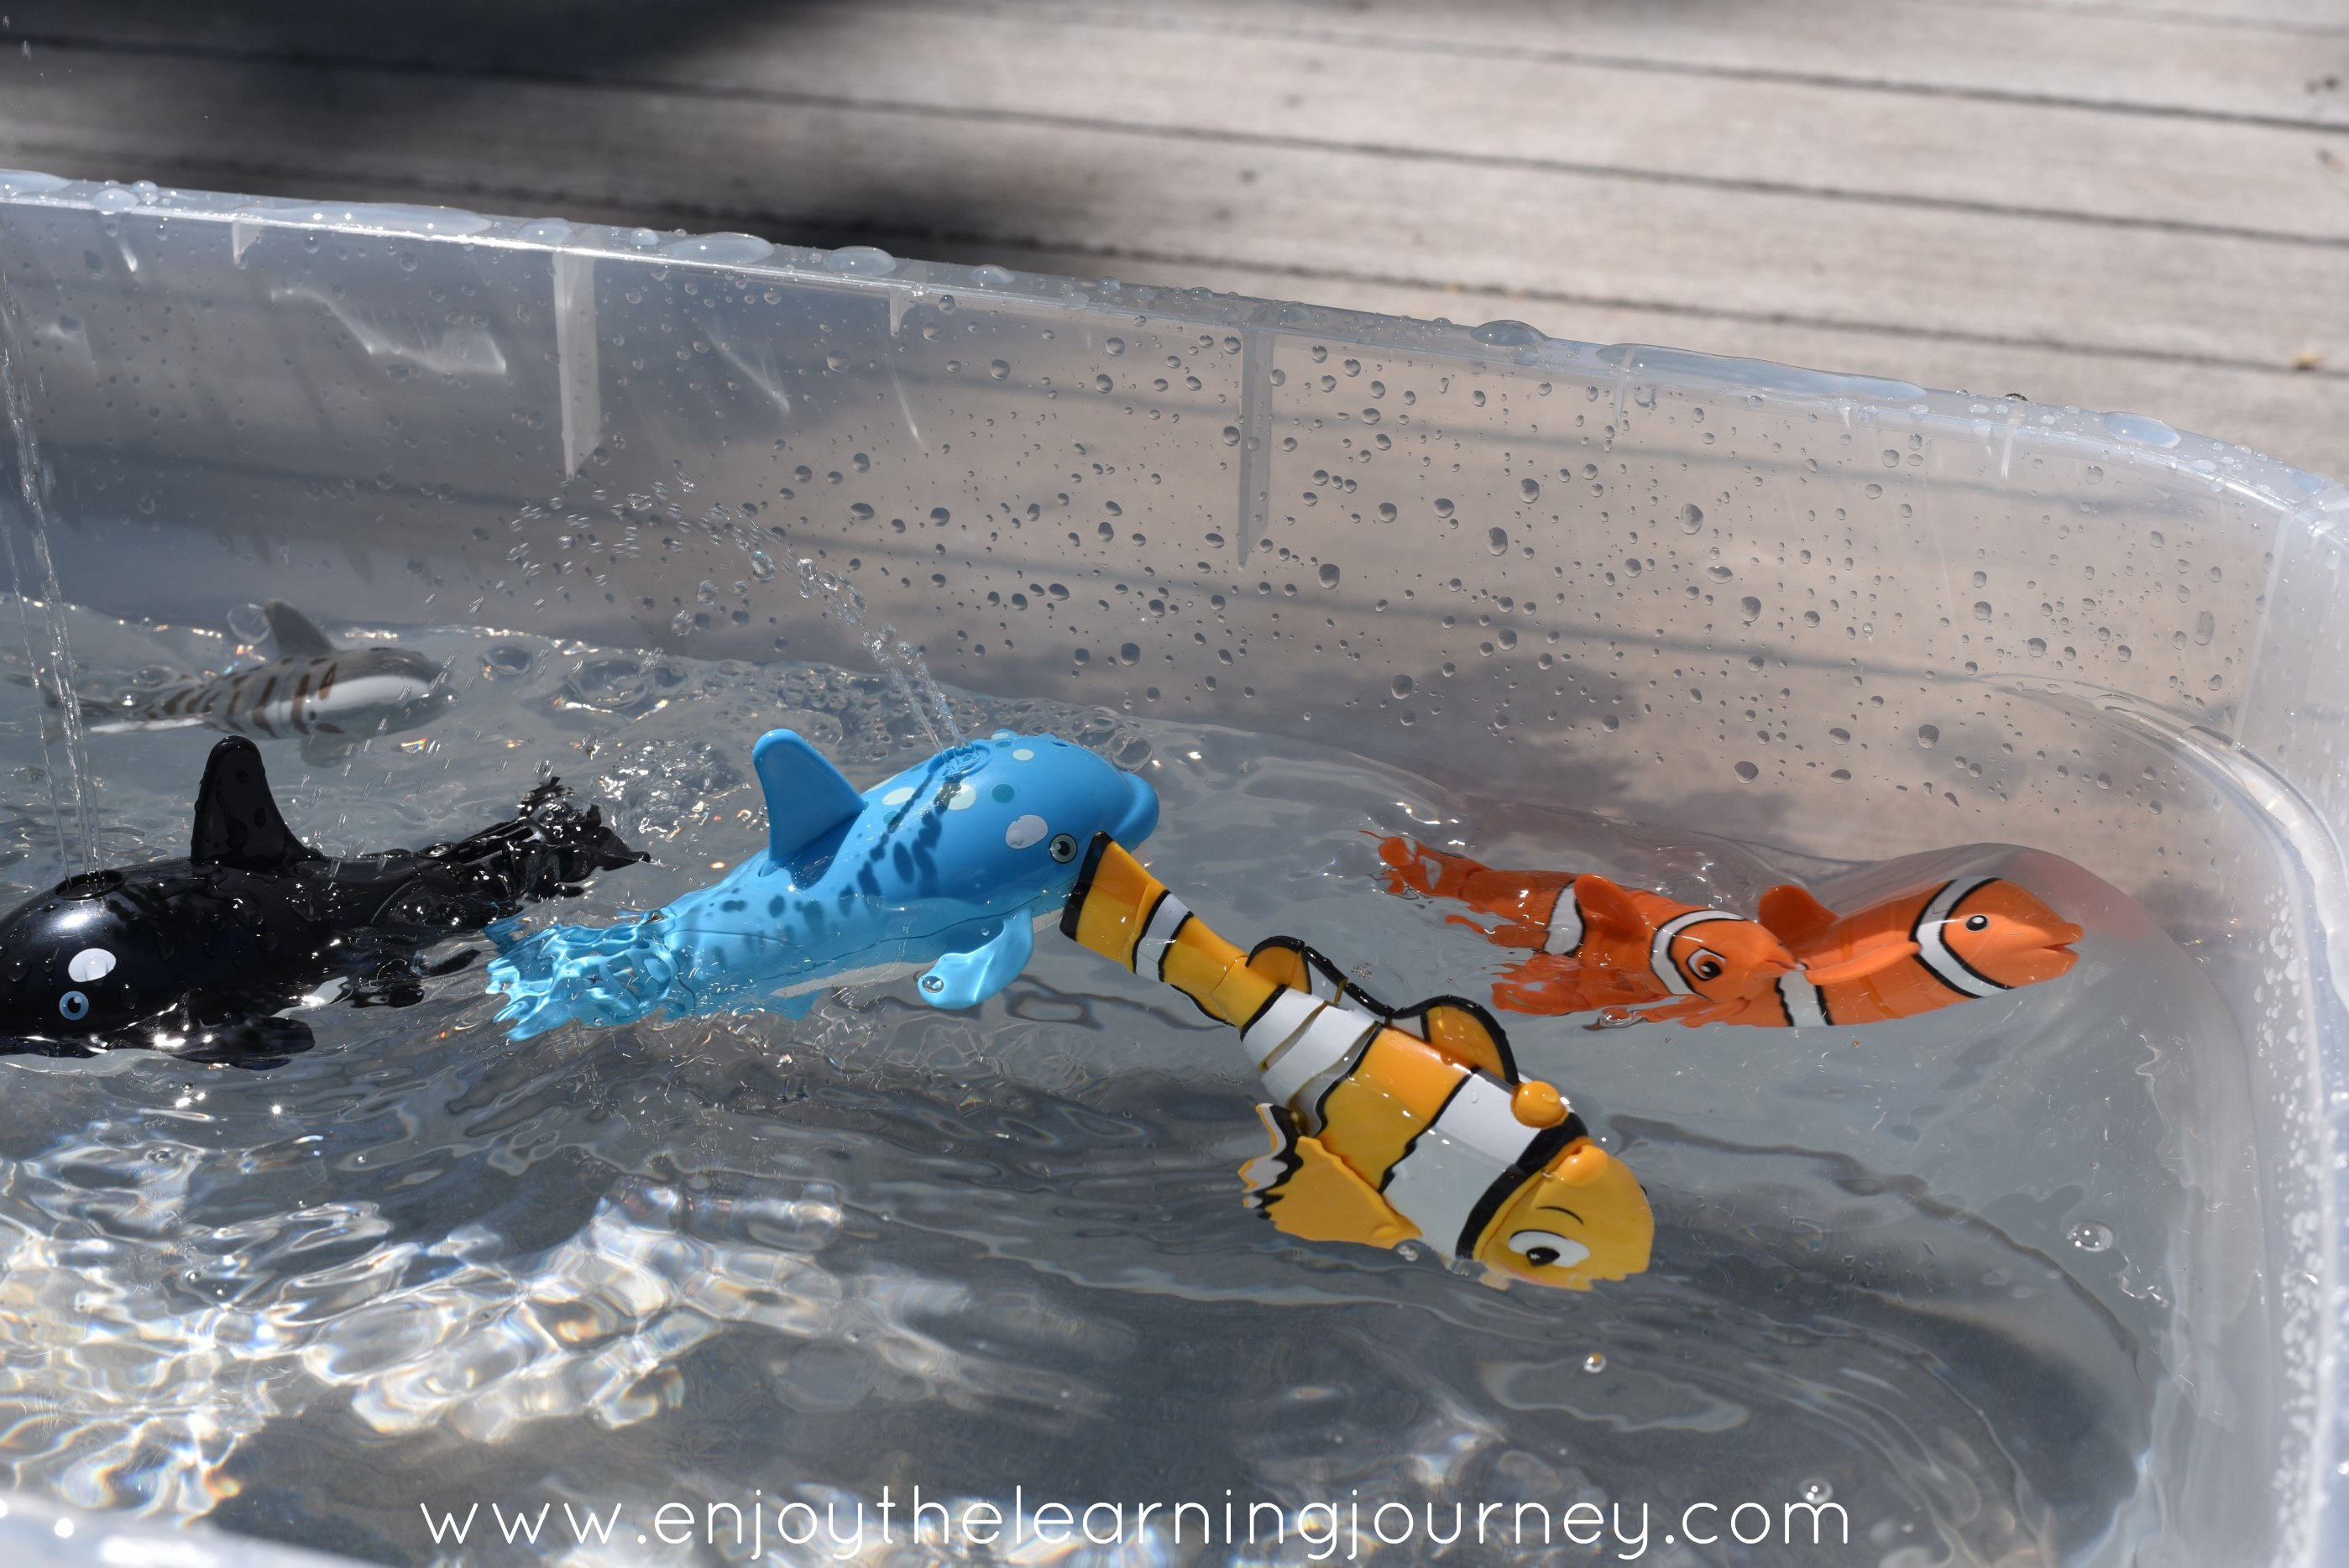 Lil' Fishys are perfect for summer water play to excite and engage your children! From preschoolers to elementary aged children, Lil' Fishys toys can be used with water tables, small or large pools, in the bathtub or with the available fish bowl.